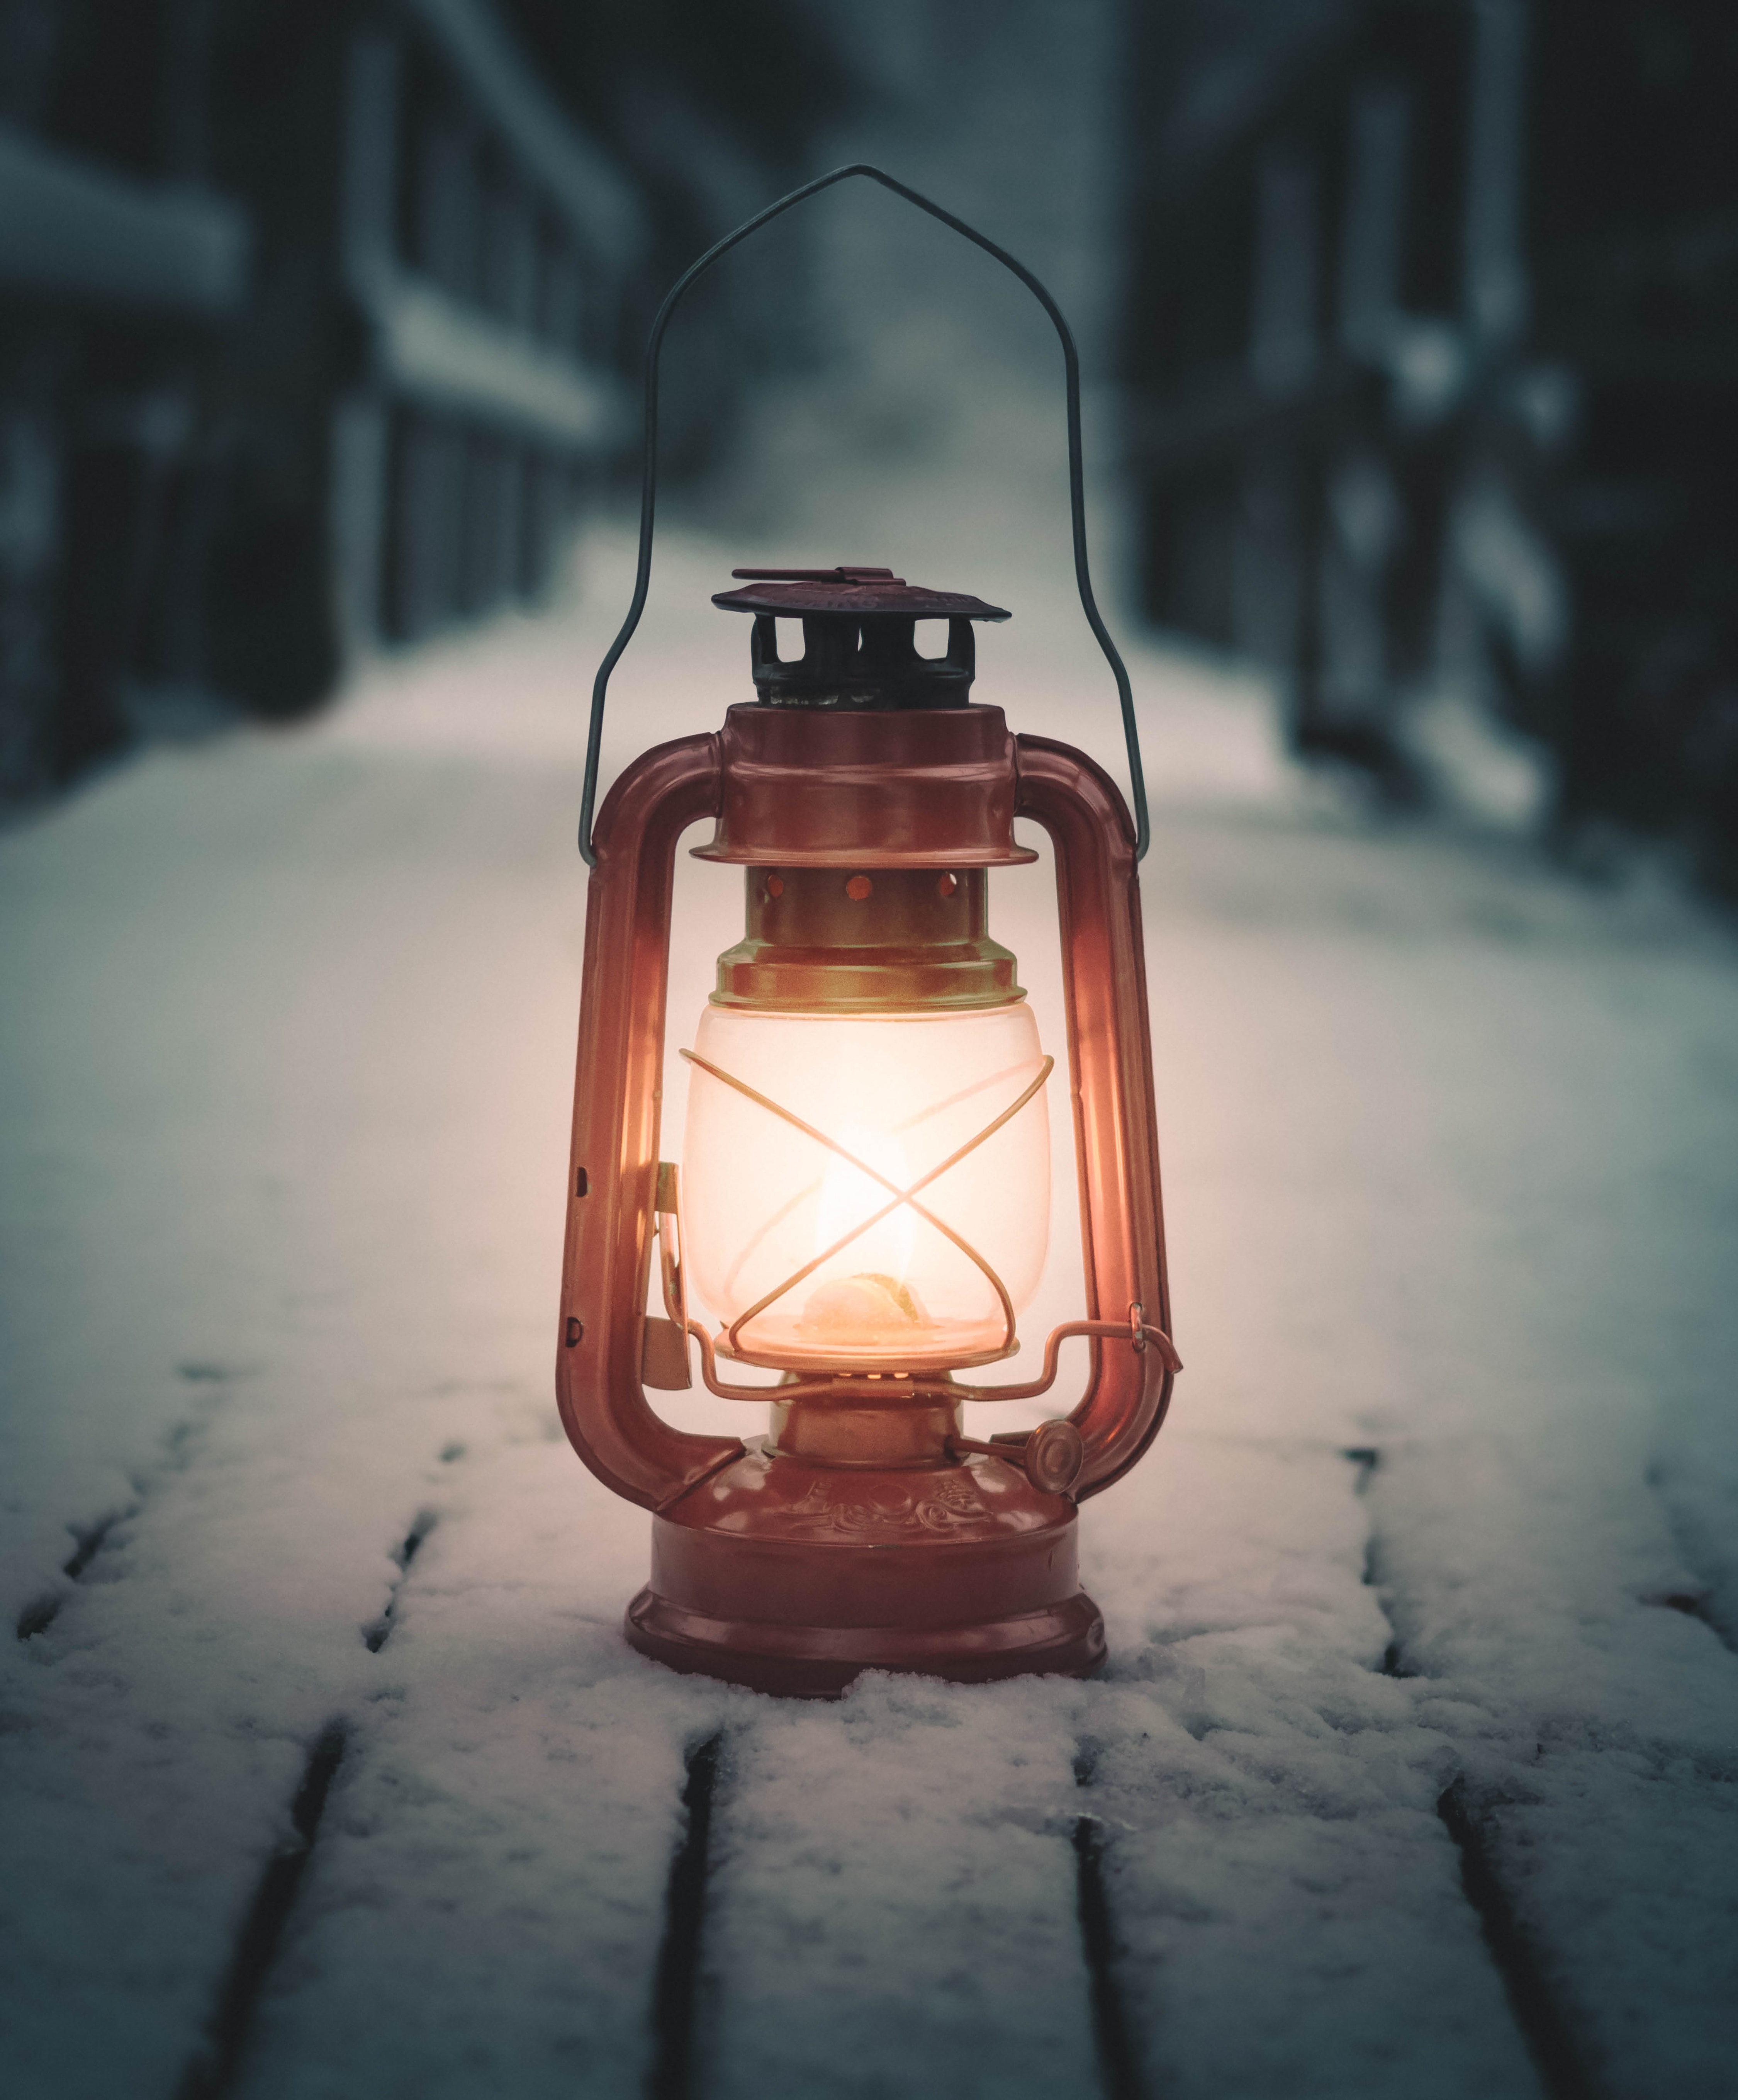 149558 download wallpaper Miscellanea, Miscellaneous, Lamp, Lantern, Snow screensavers and pictures for free